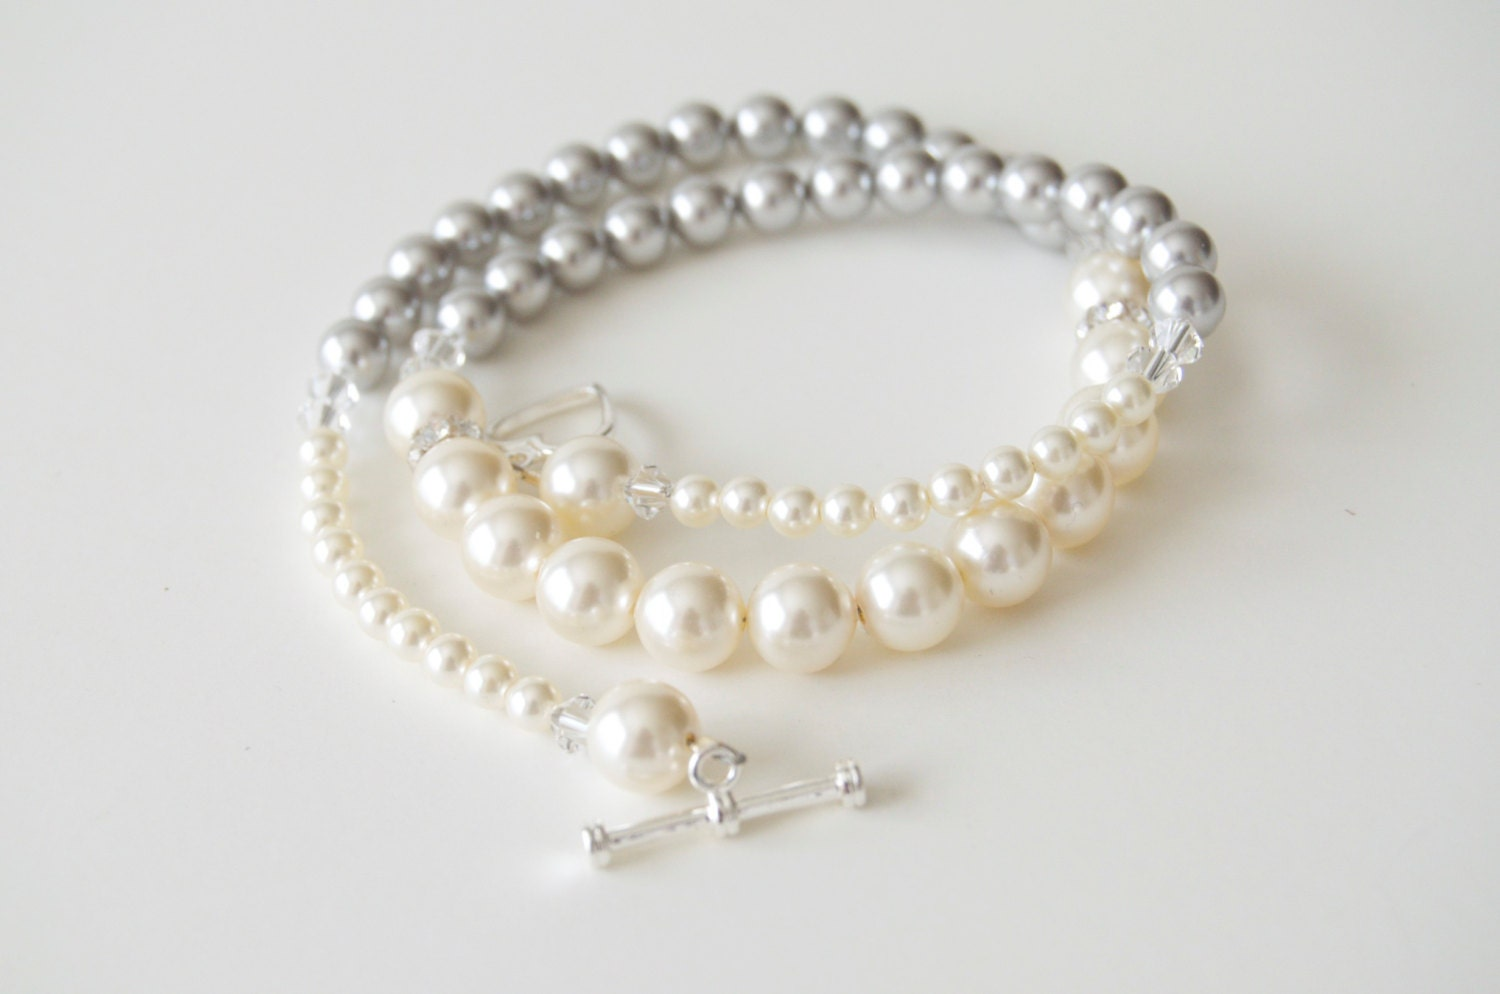 Swarovski Pearl and Crystal Necklace- Gray and Cream - Princess Length - jubilantrendezvous